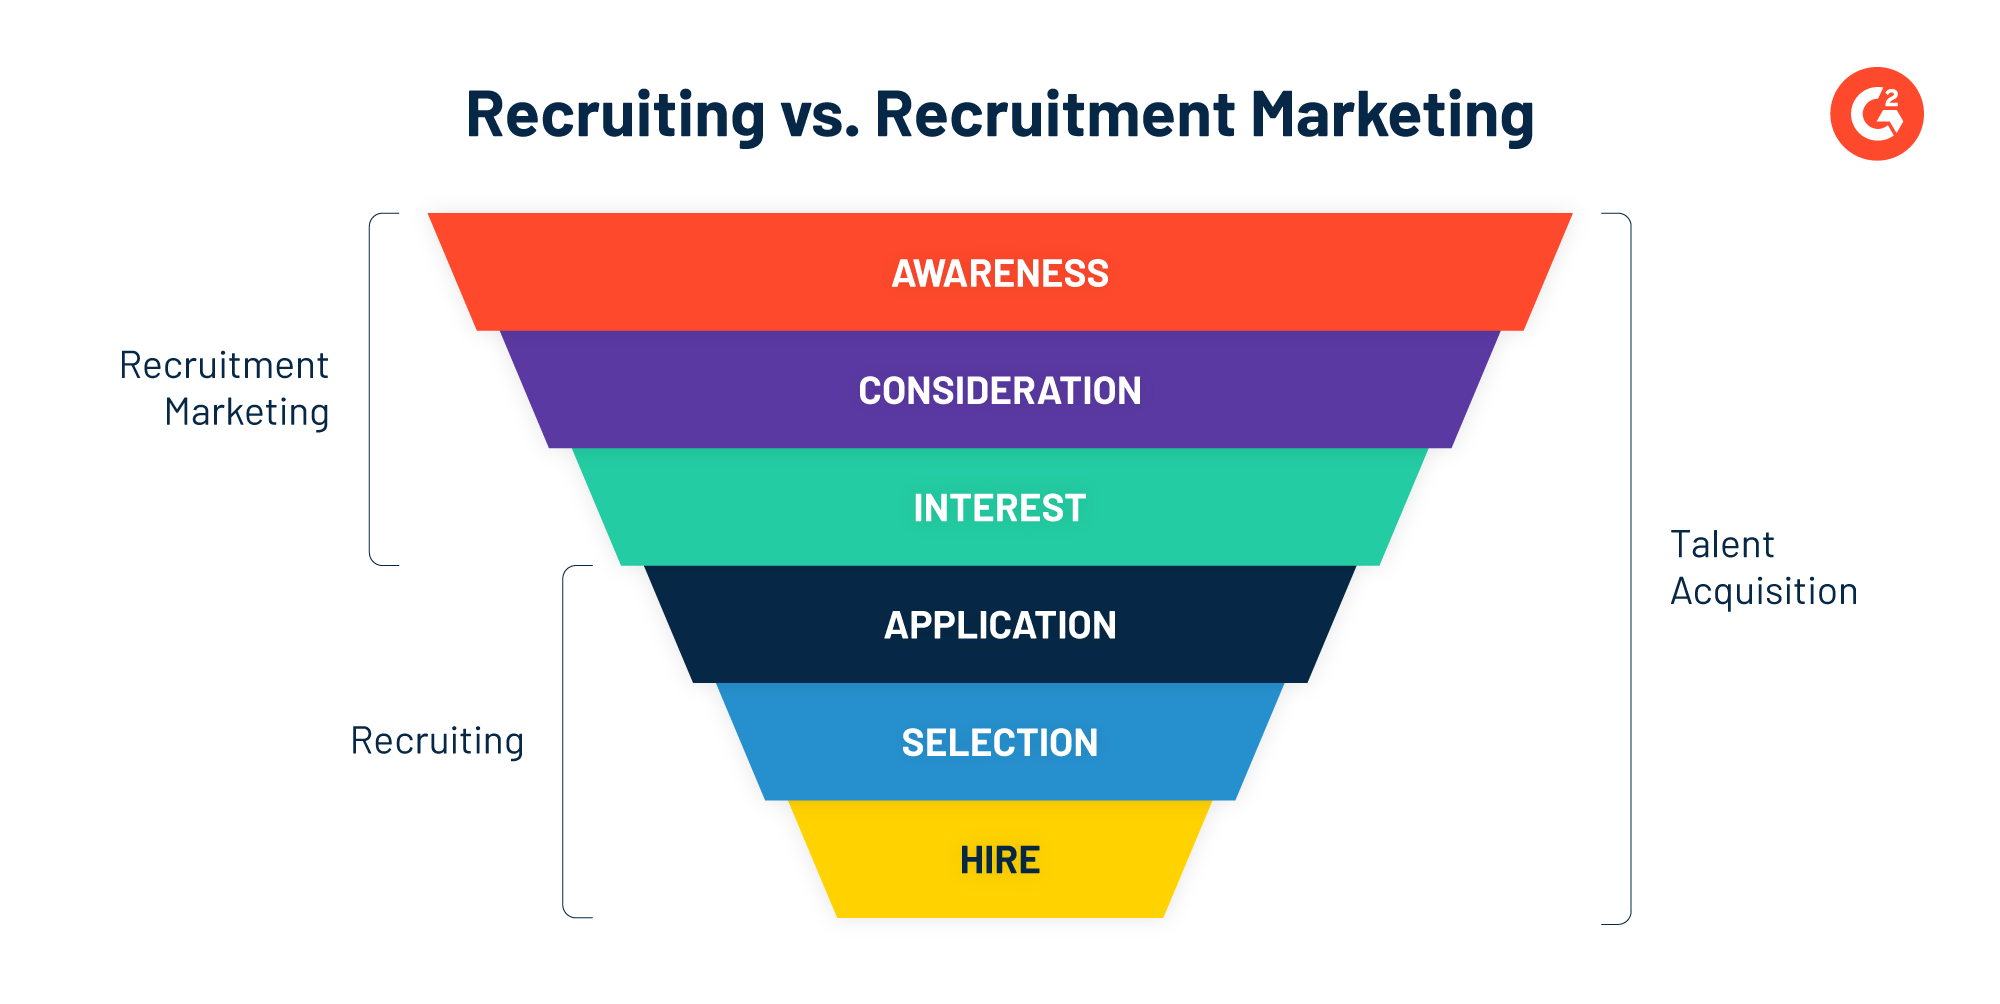 Recruitment Marketing: How to Attract Talented Candidates